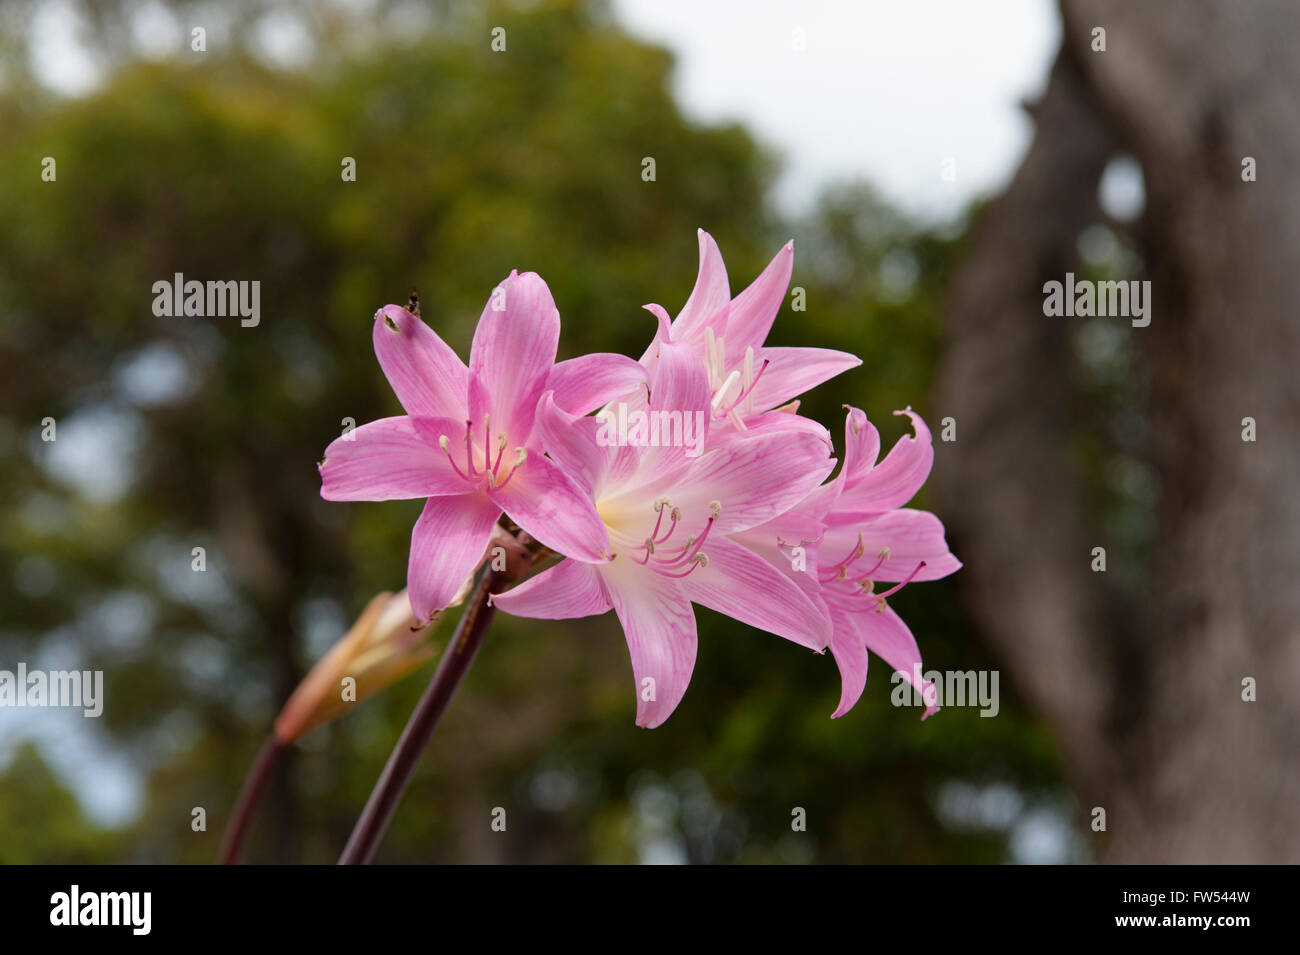 Wild liliums flowering in March along Caves Road, Margaret River, Western Australia - Stock Image